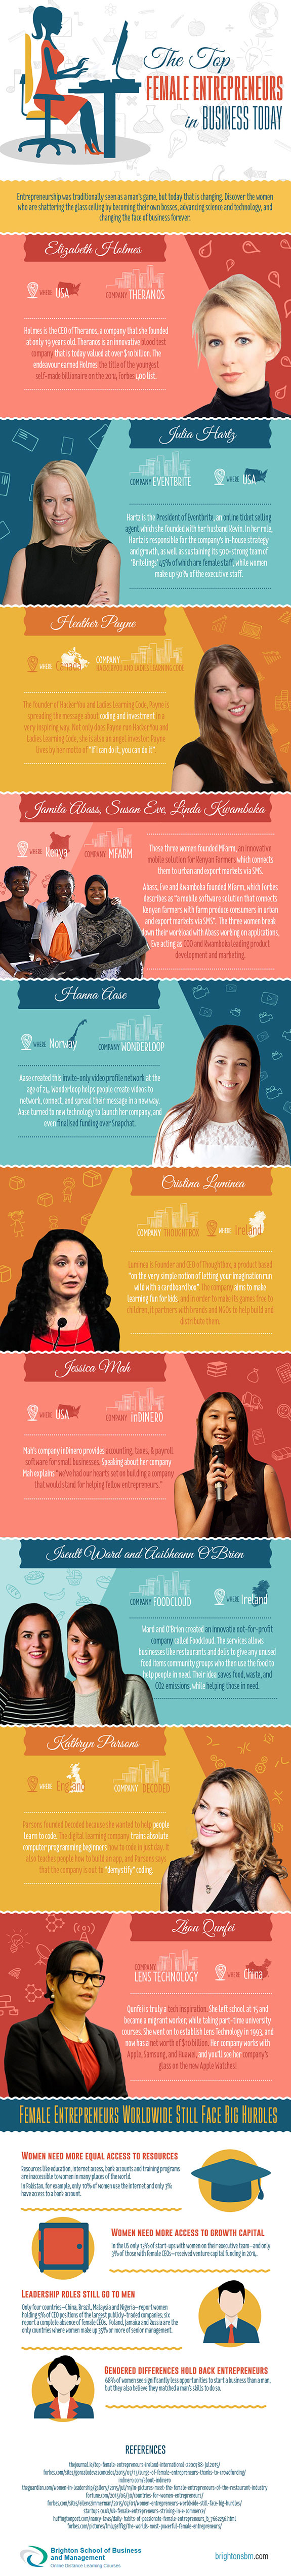 Top-Female-Entrepreneurs-in-Business-Today-Infographic